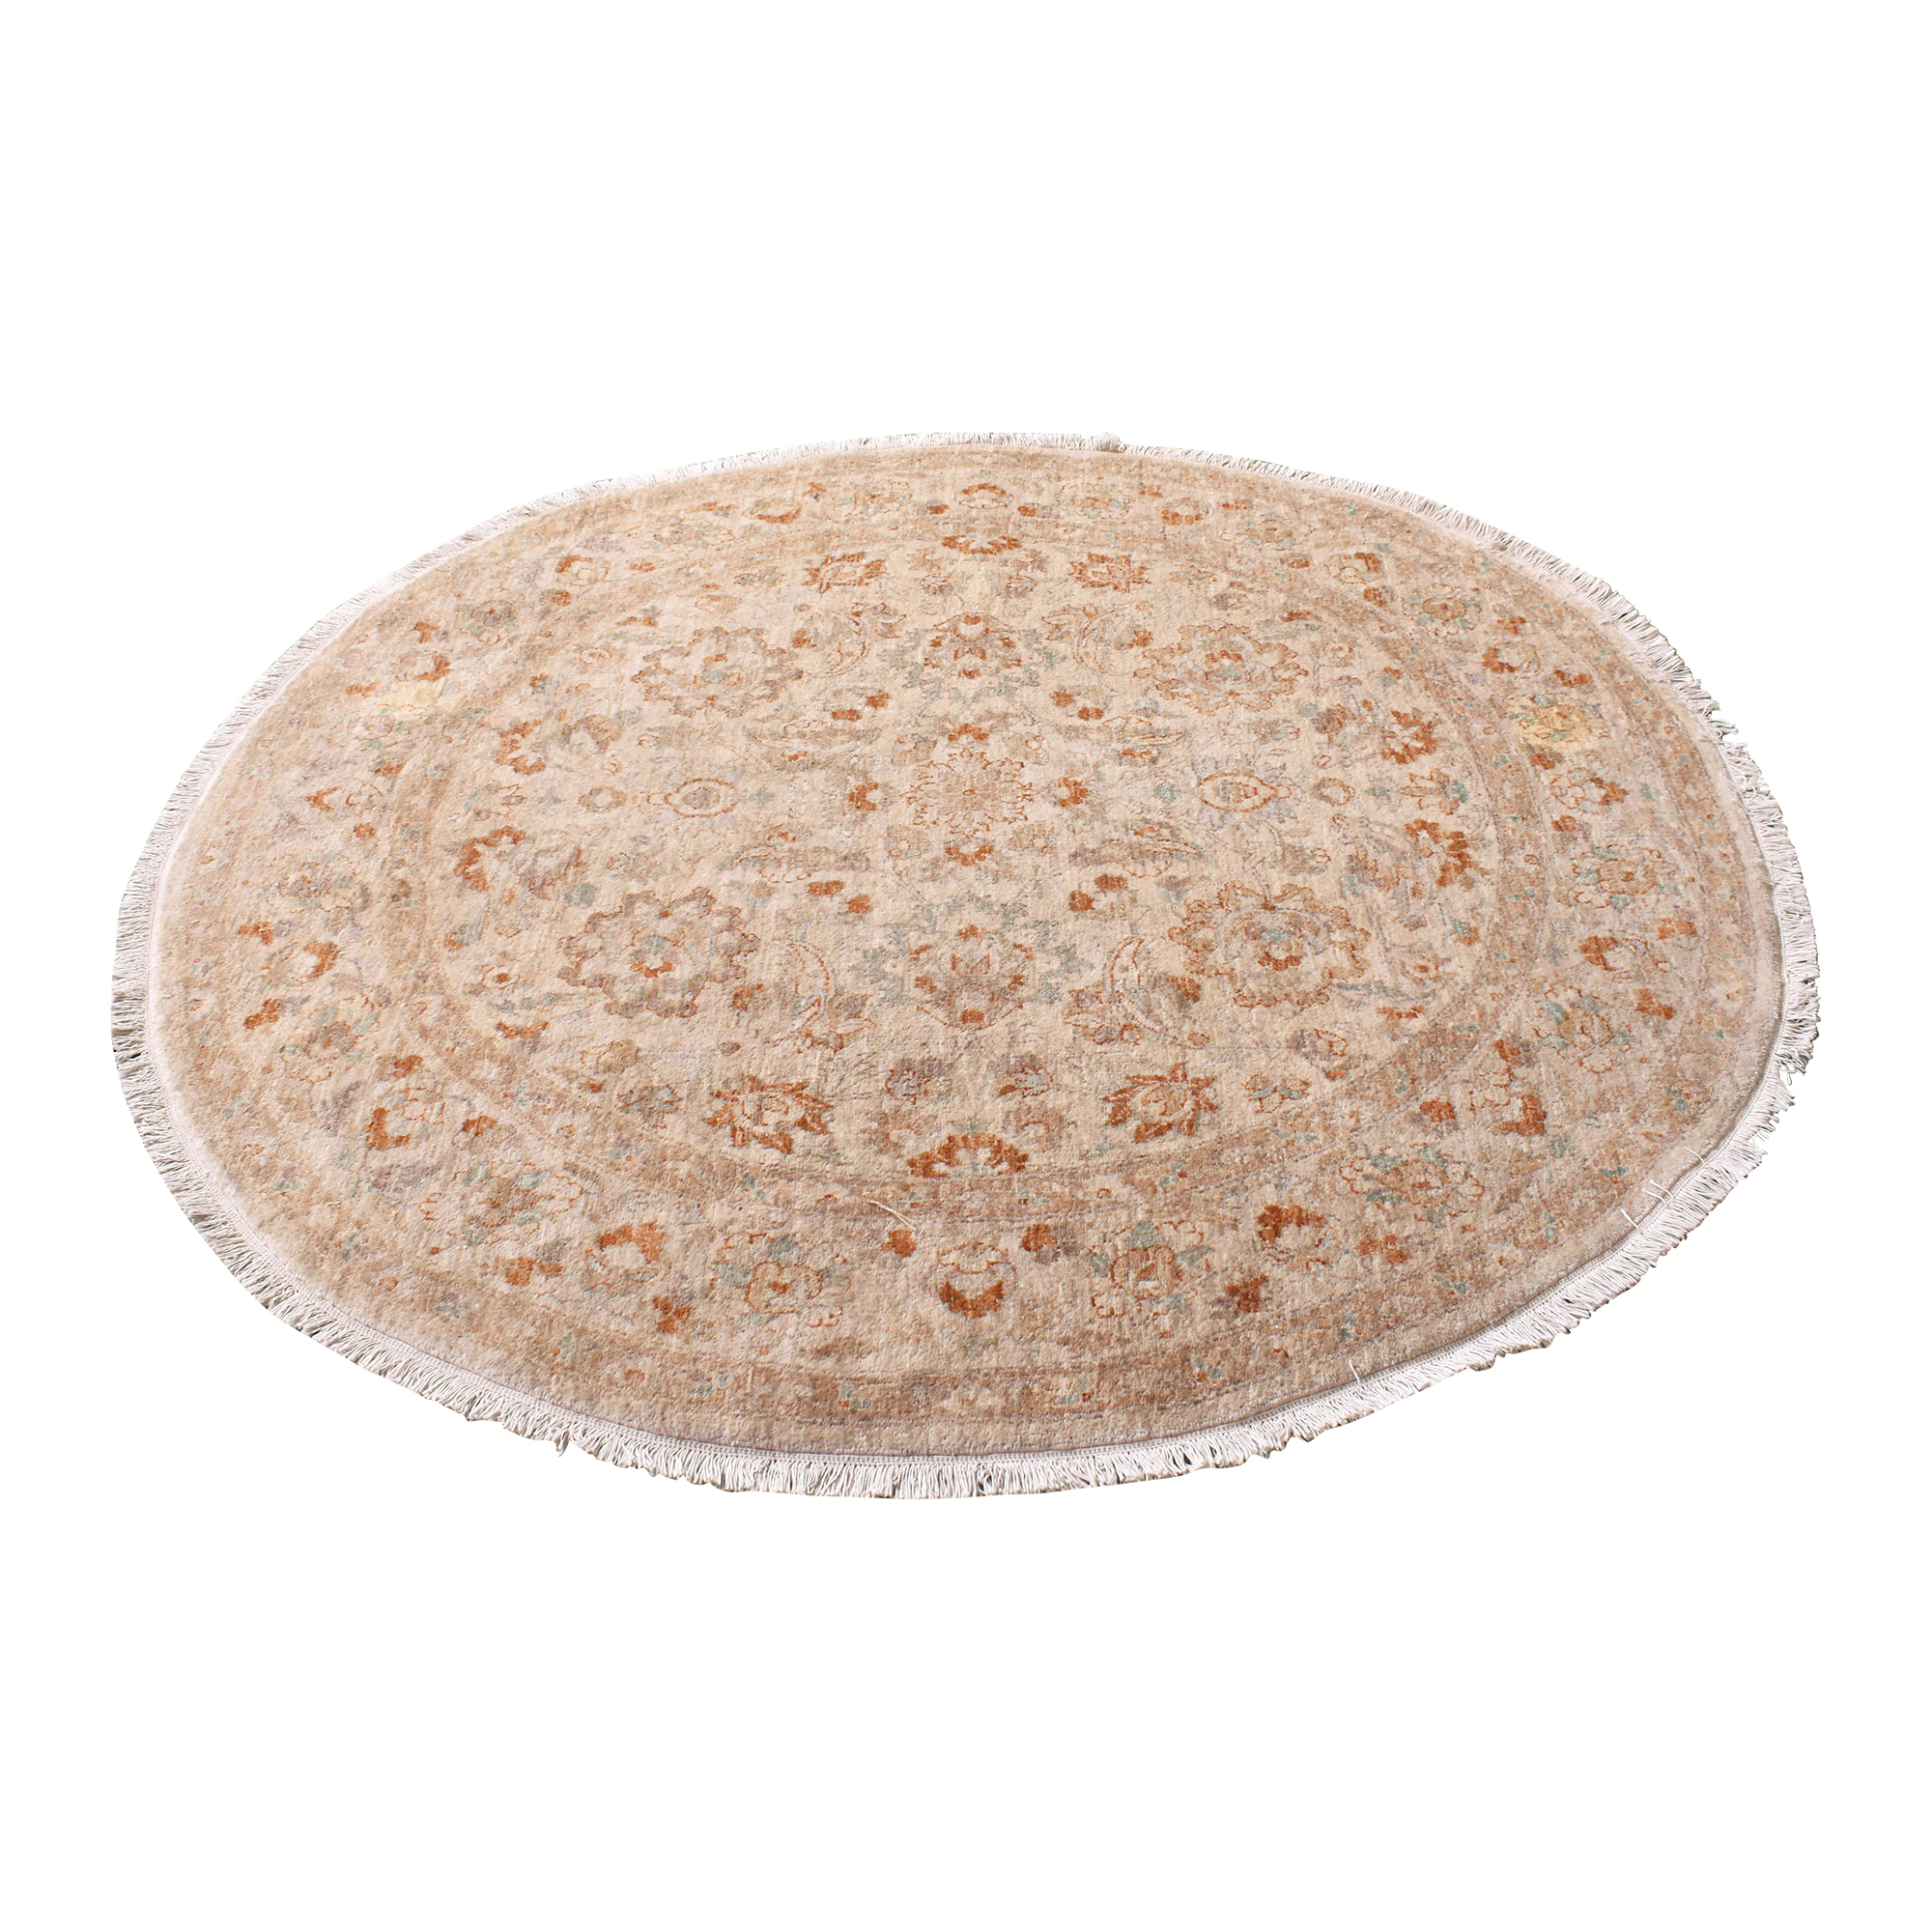 Round Patterned Area Rug for sale